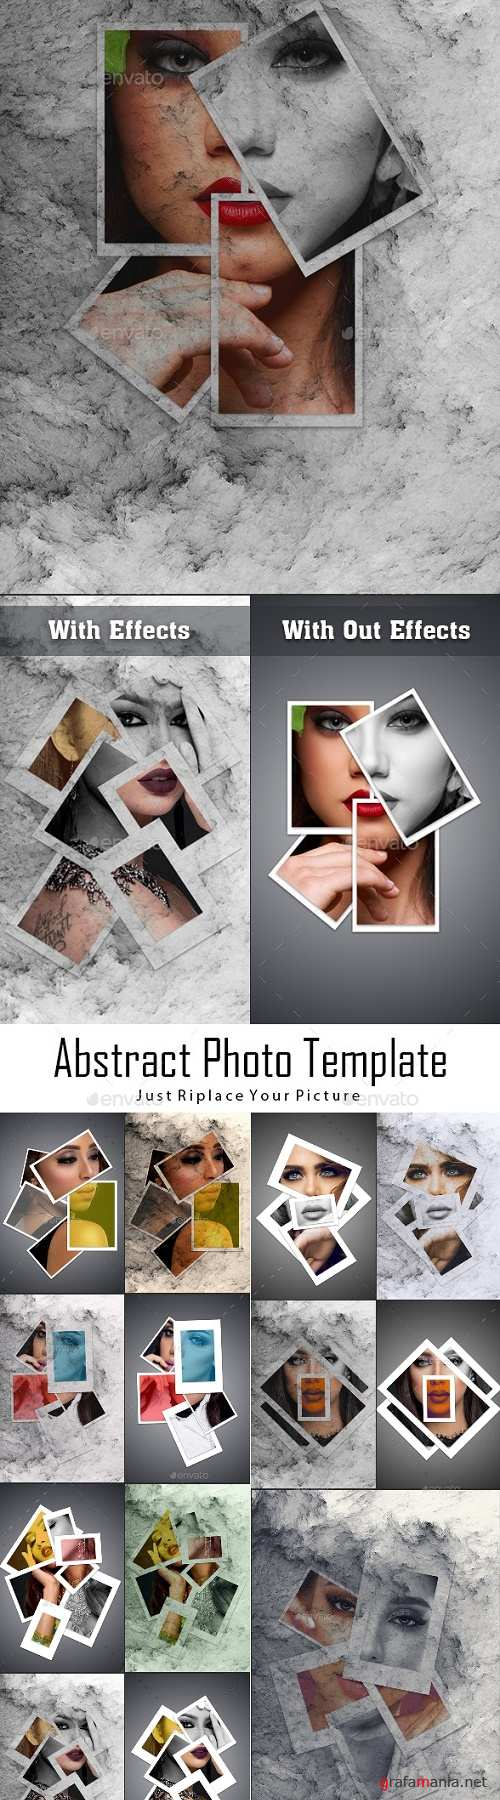 Abstract Photo Template 23805103